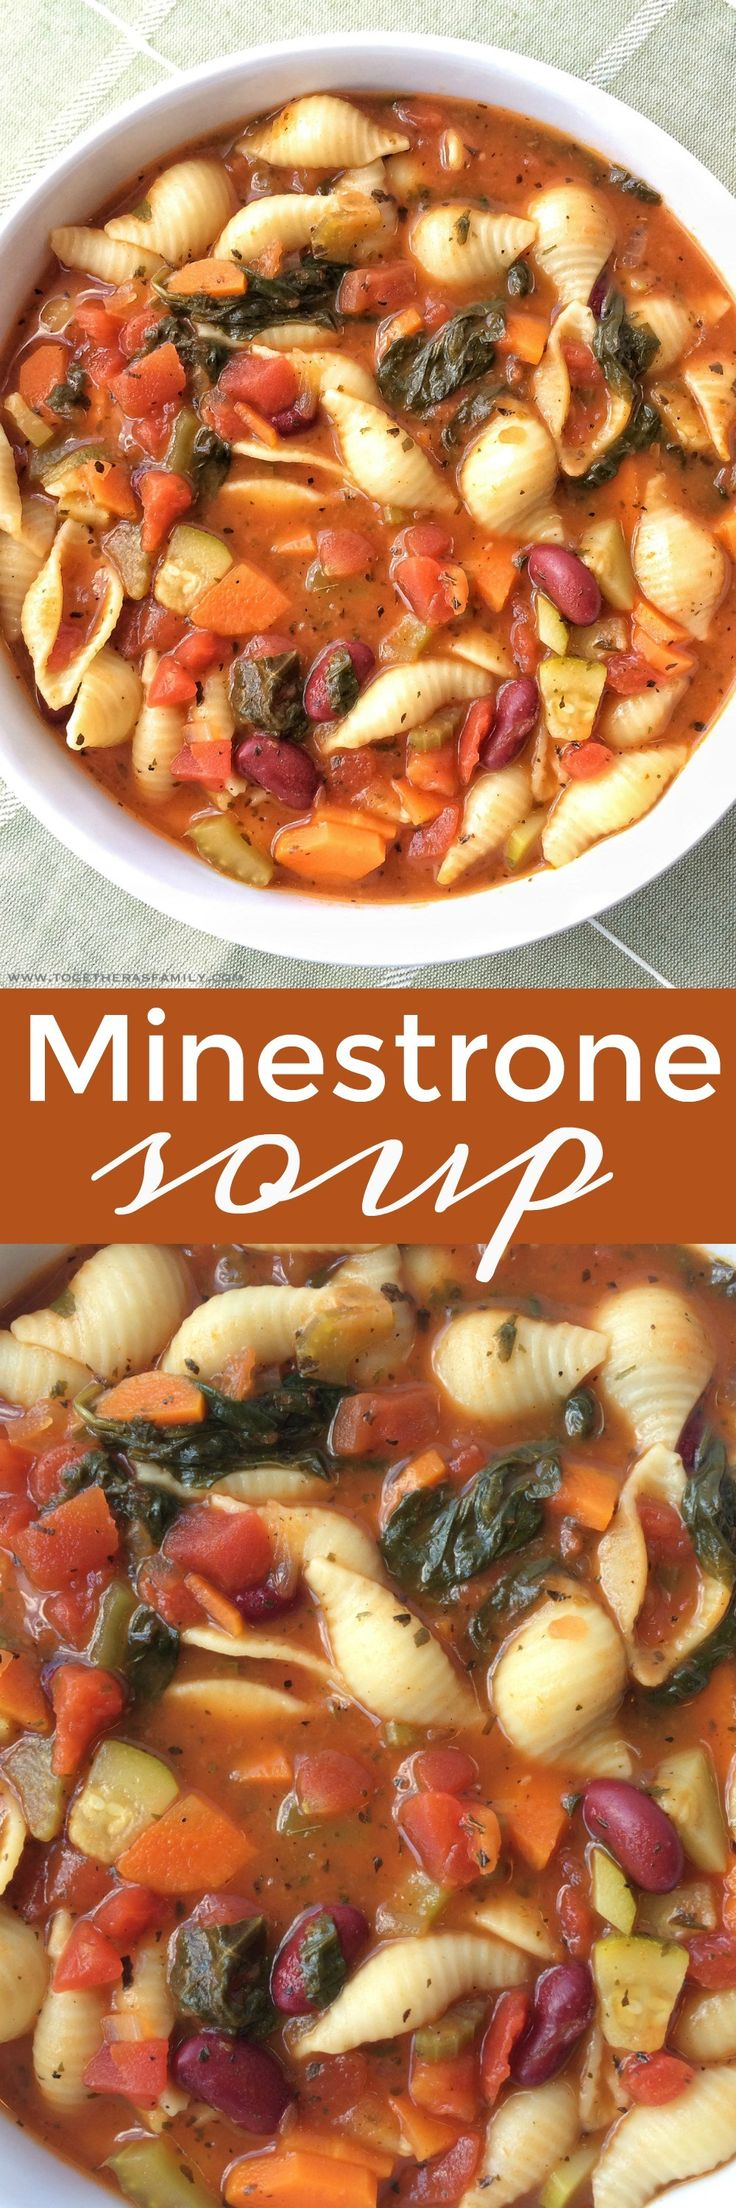 Minestrone Soup | www.togetherasfamily.com